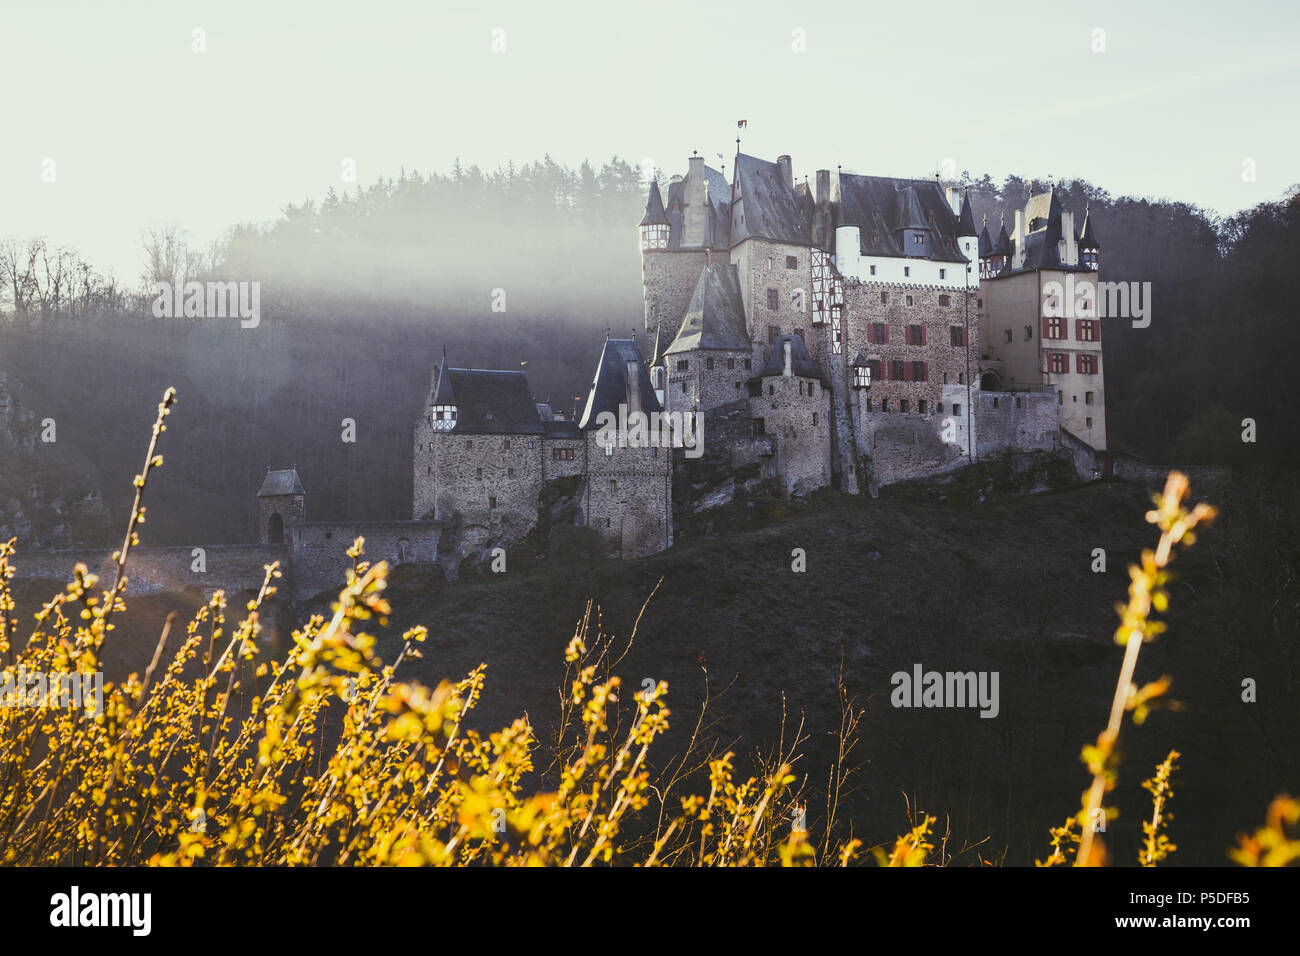 Beautiful view of famous Eltz Castle in scenic golden morning light at sunrise in fall with retro vintage VSCO style filter effect, Wierschem, Germany Stock Photo